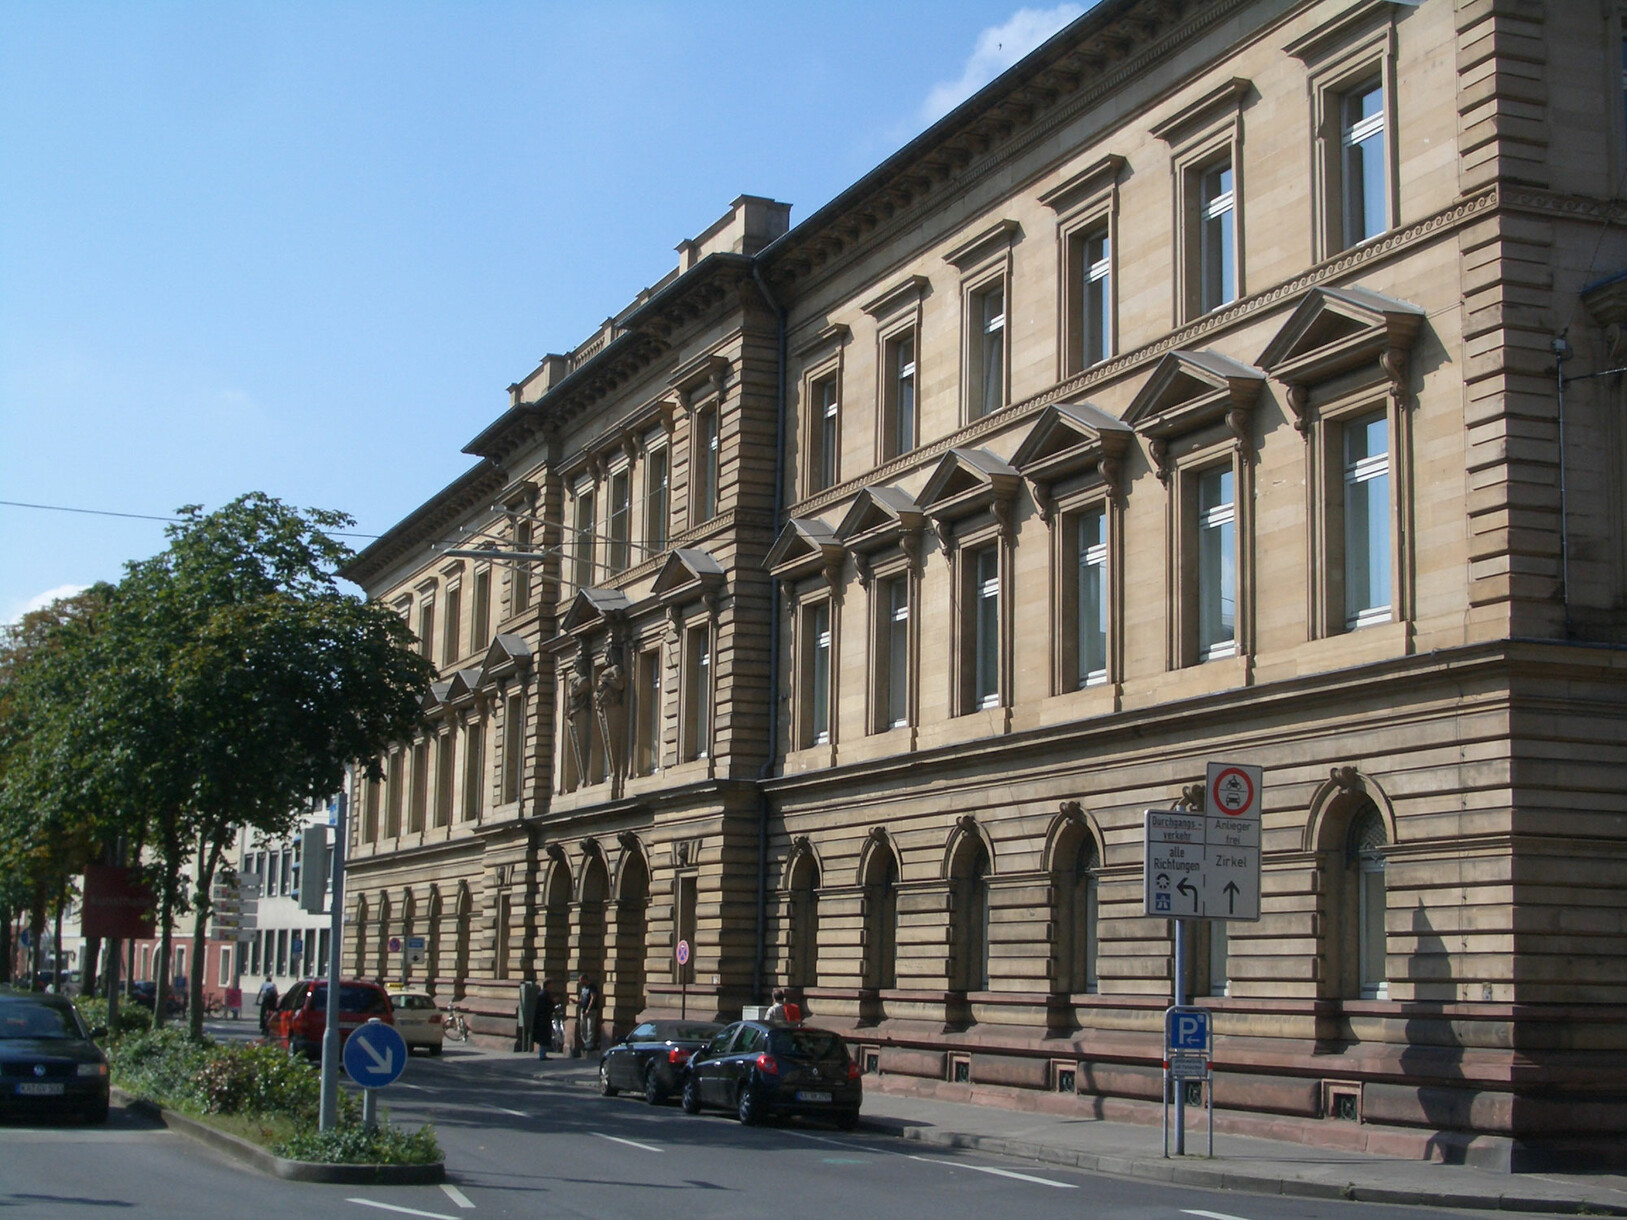 Exterior view of Karlsruhe County Court